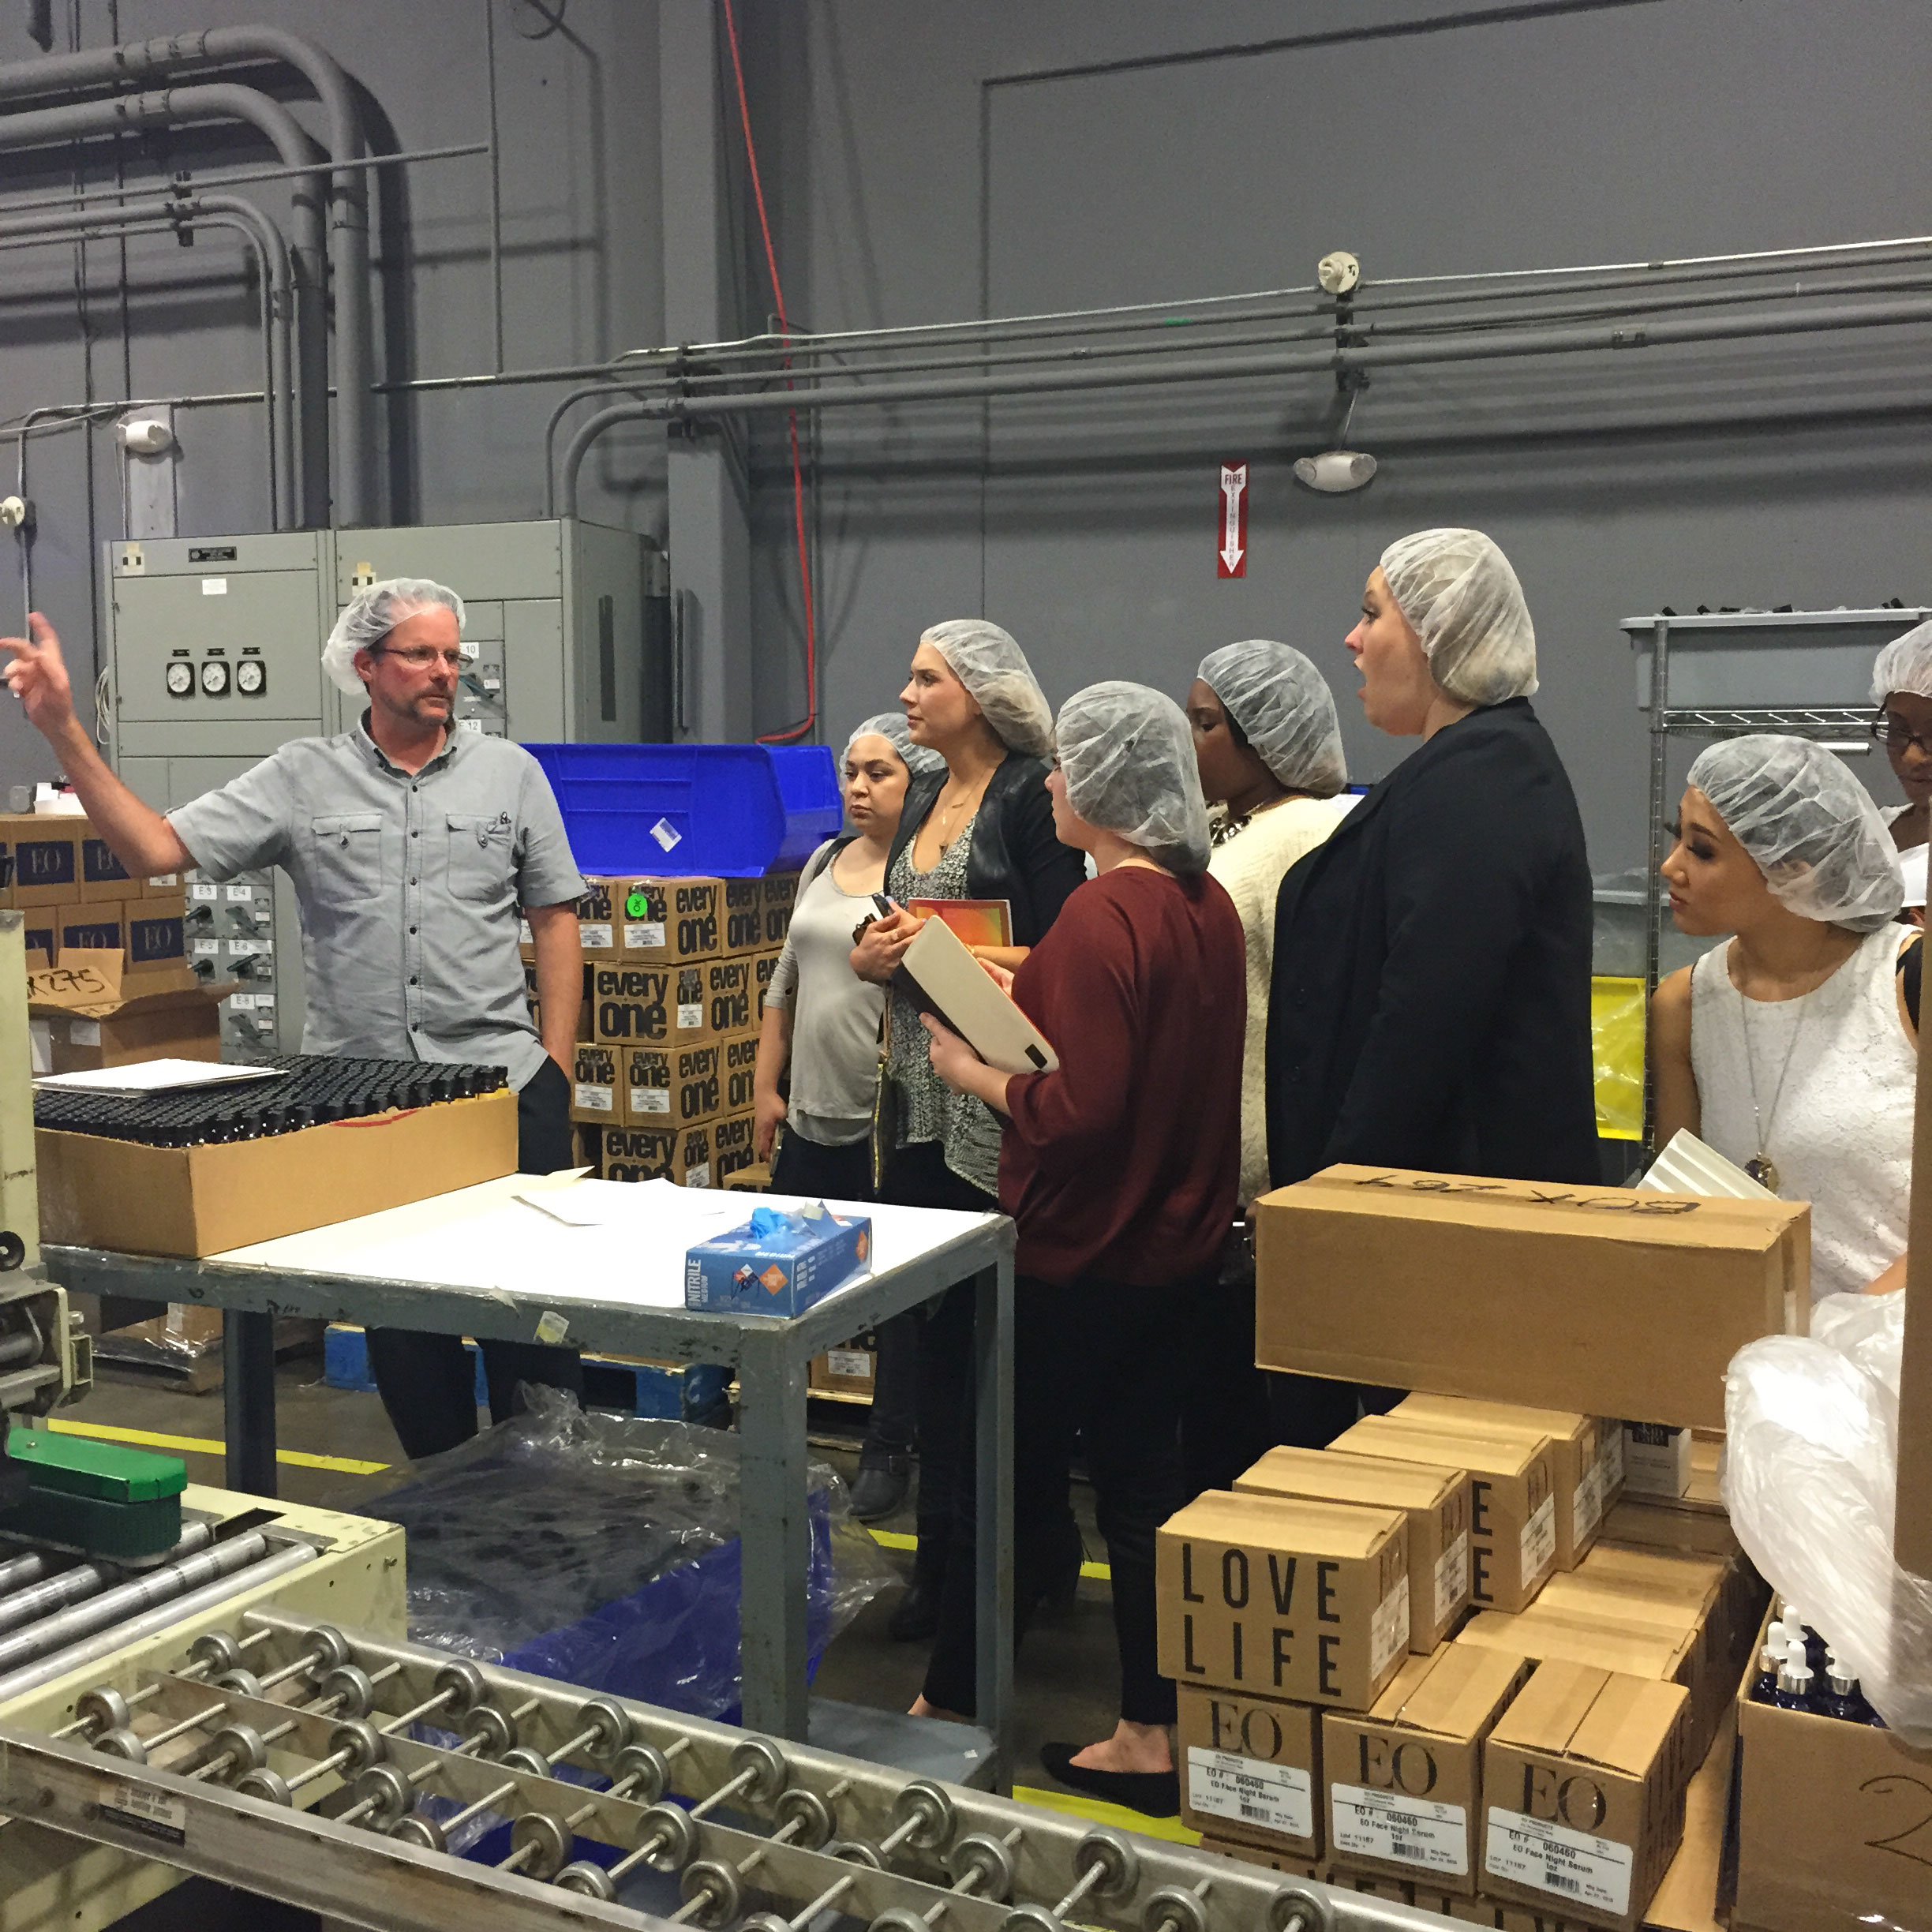 Next we drove up to EO's new facility in San Rafael to see how another essential oils company has grown.